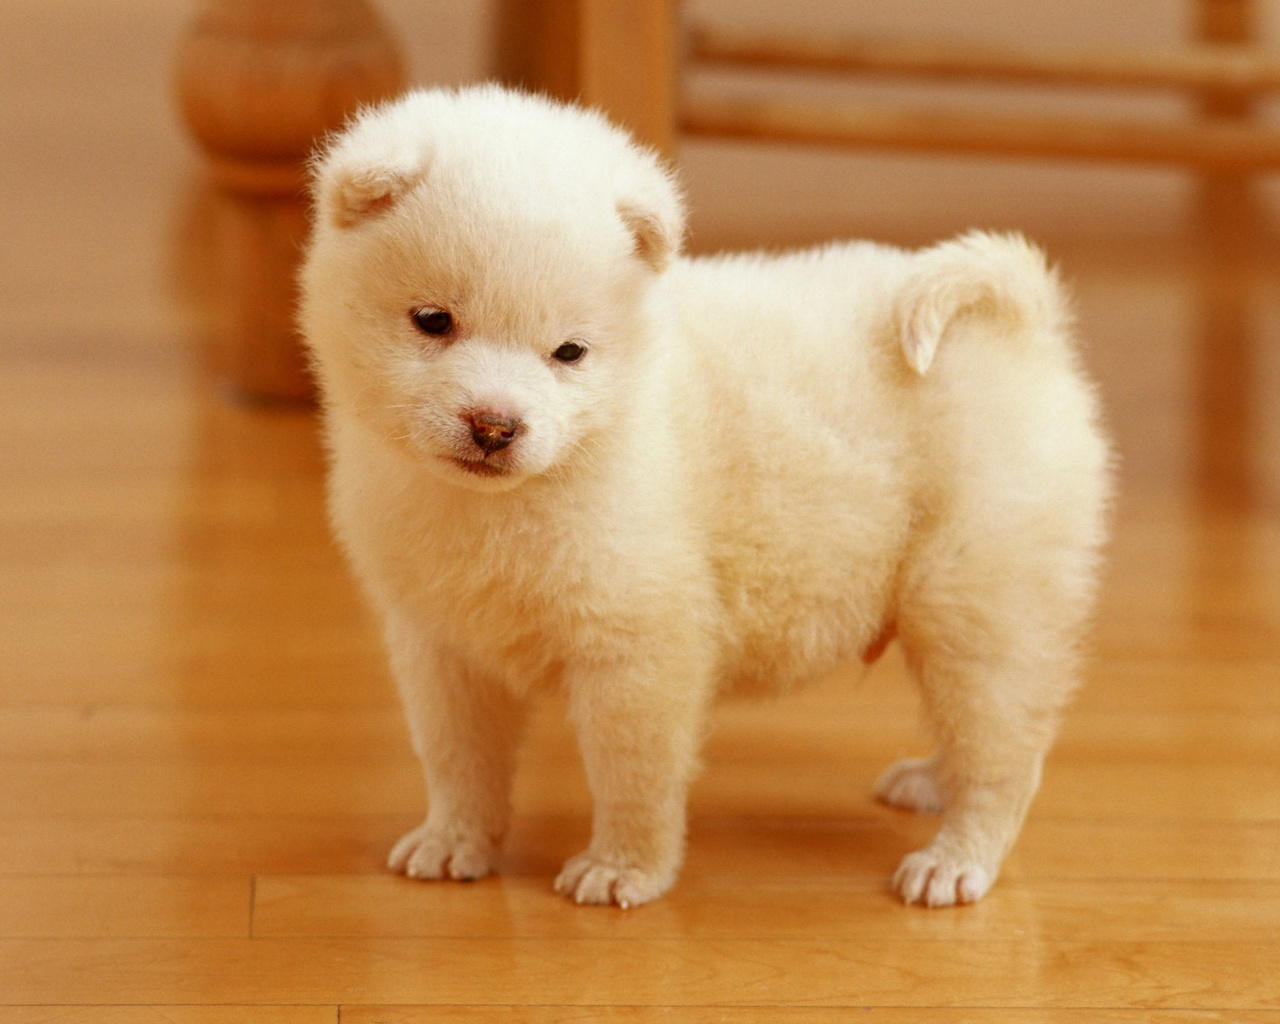 HD WALLPAPERS Cute puppies wallpapers 1280x1024